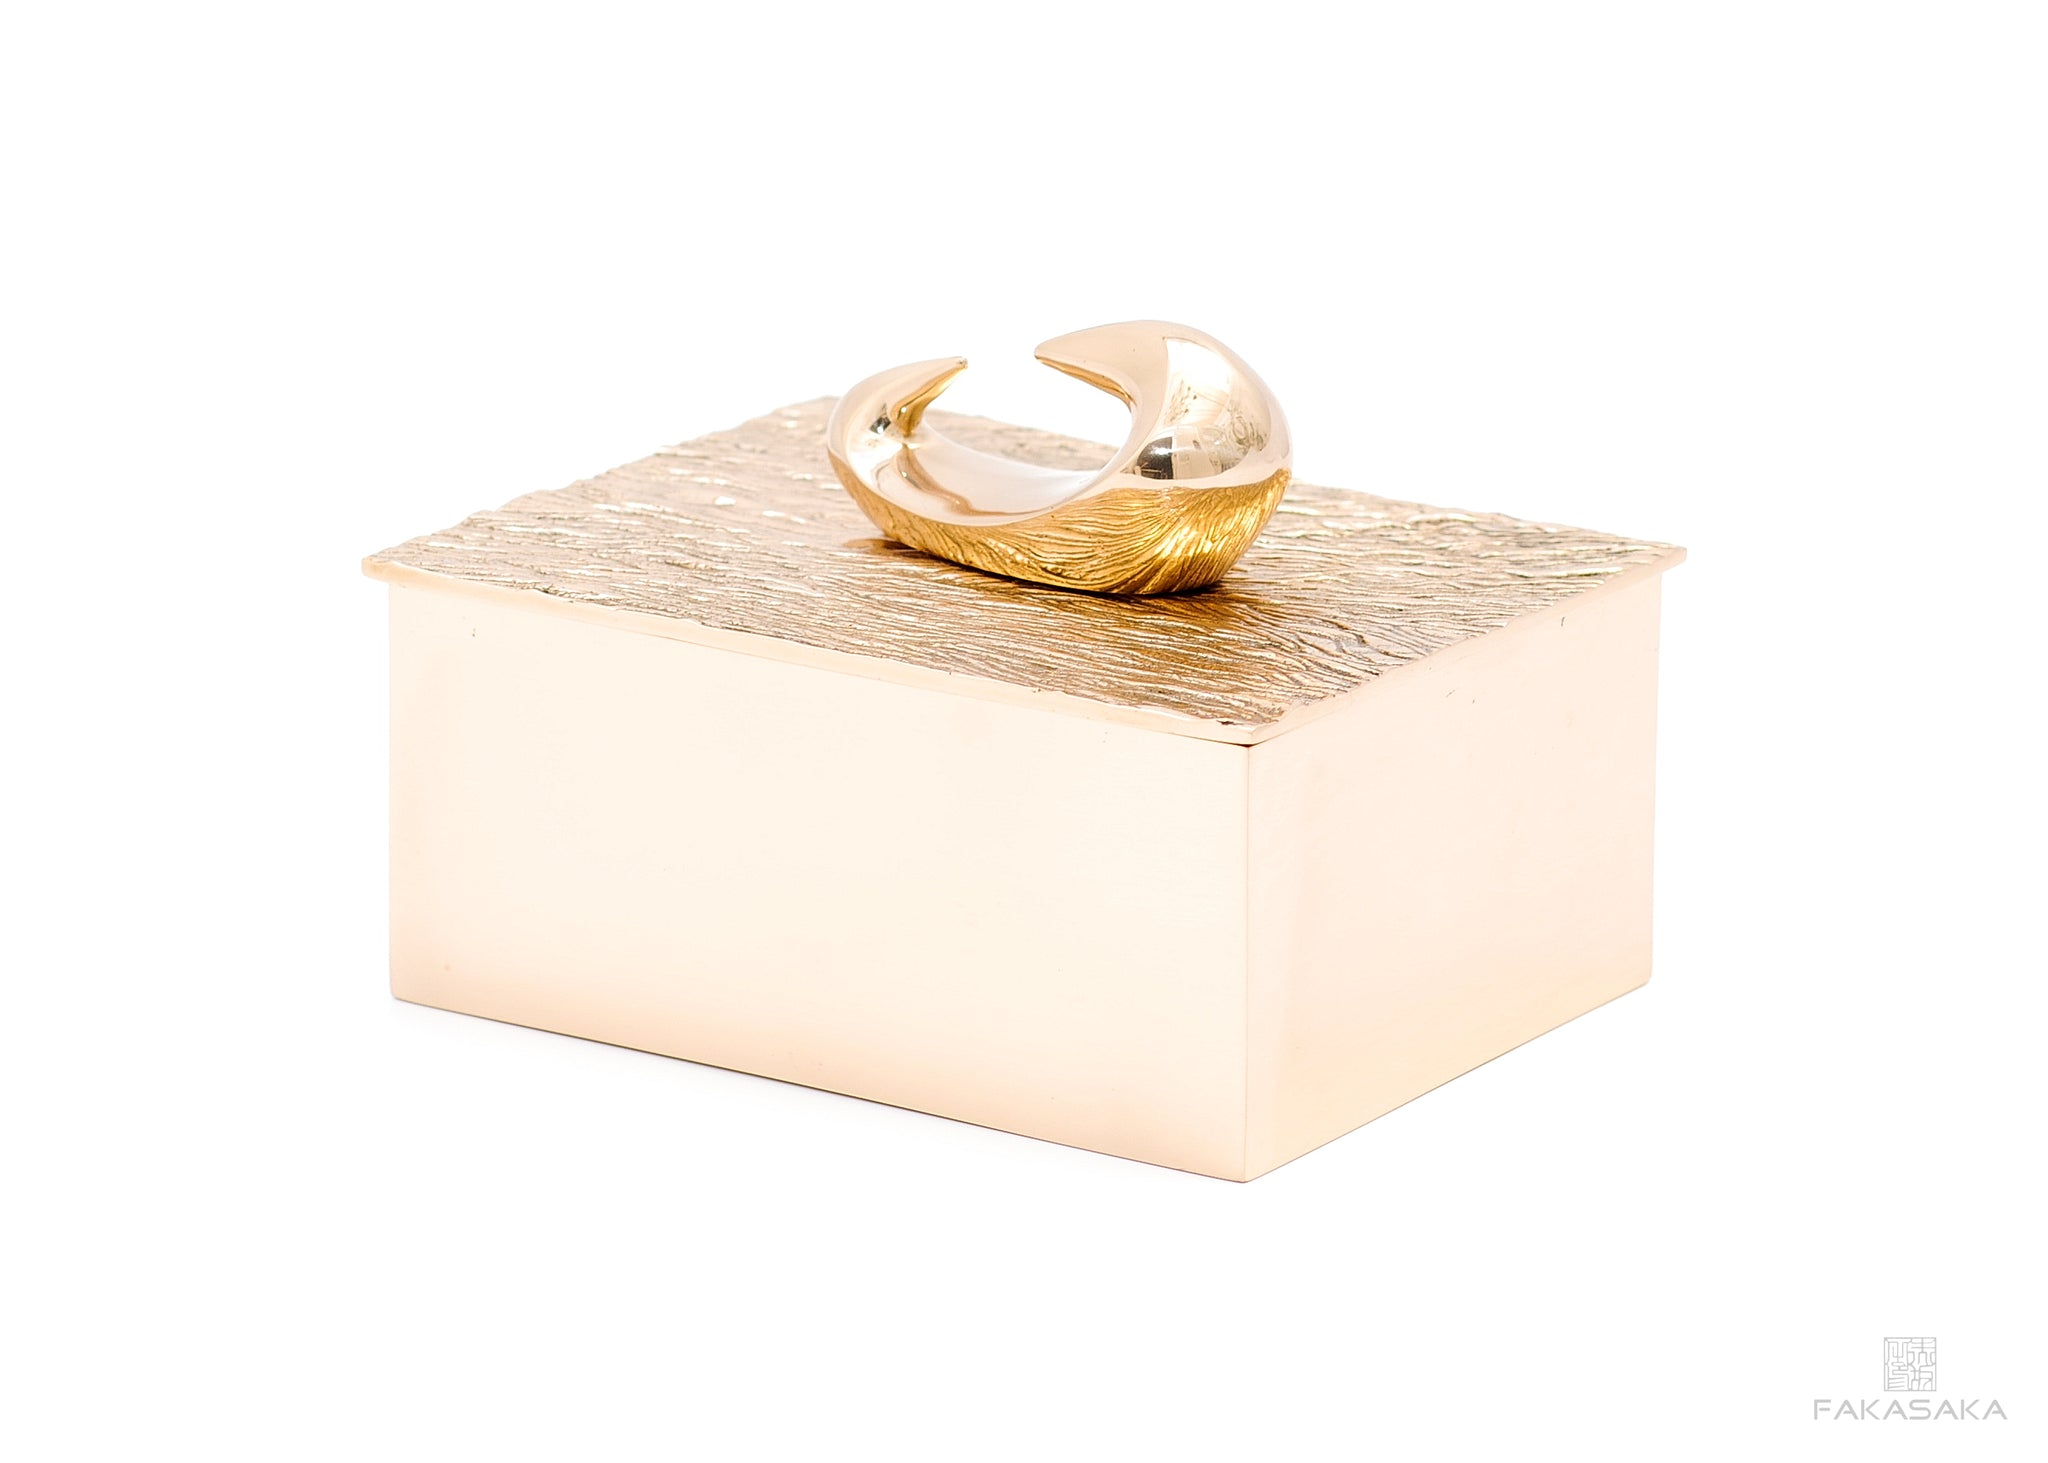 NICKS BOX<br>MAZZY SCULPTURE ON TOP<br><br>POLISHED BRONZE